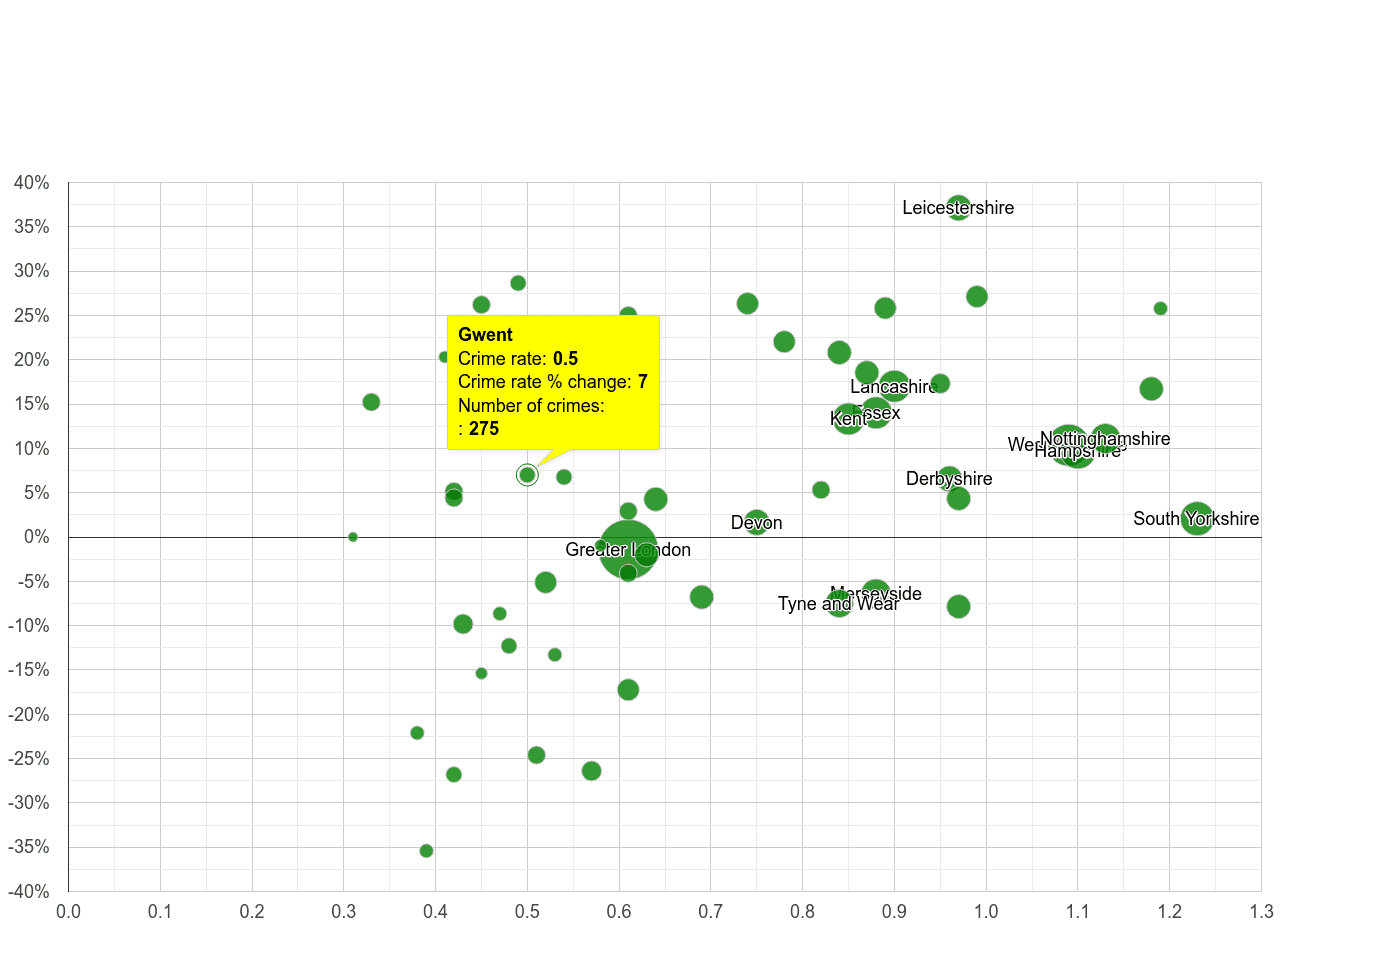 Gwent possession of weapons crime rate compared to other counties